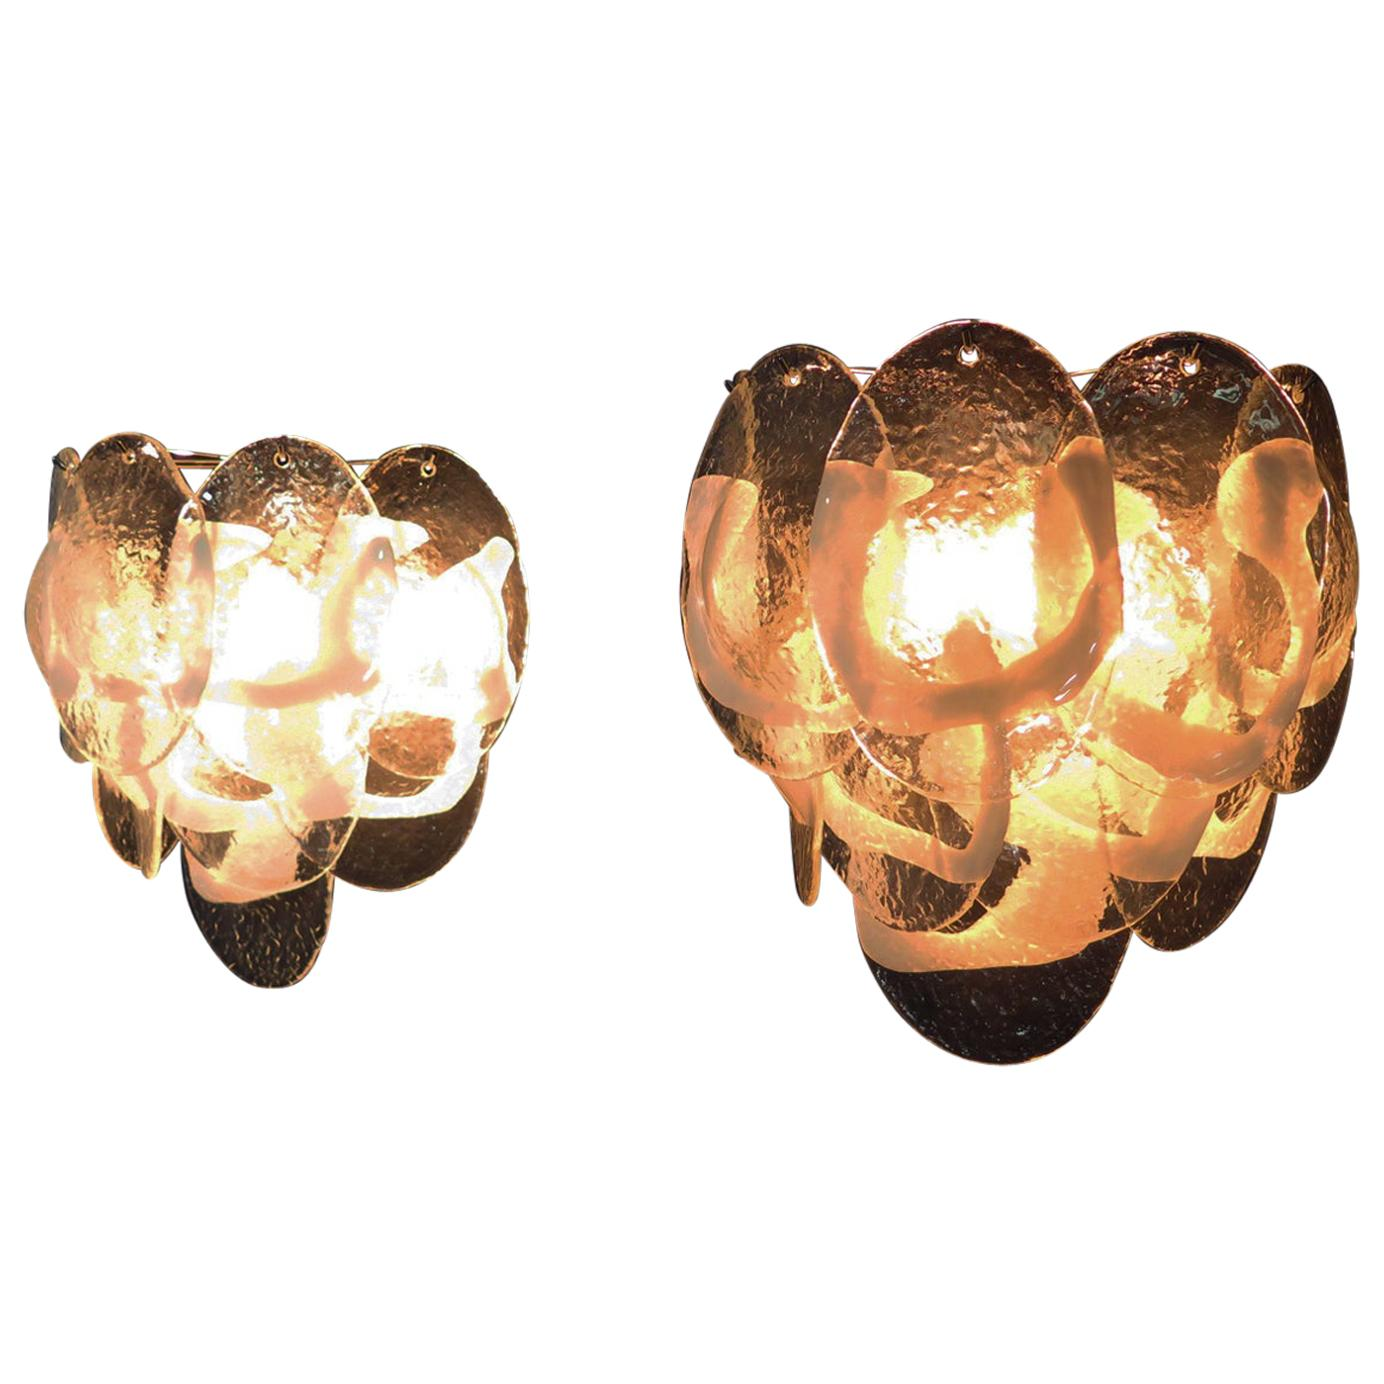 Pair of Vintage Murano Wall Sconce, 1970s